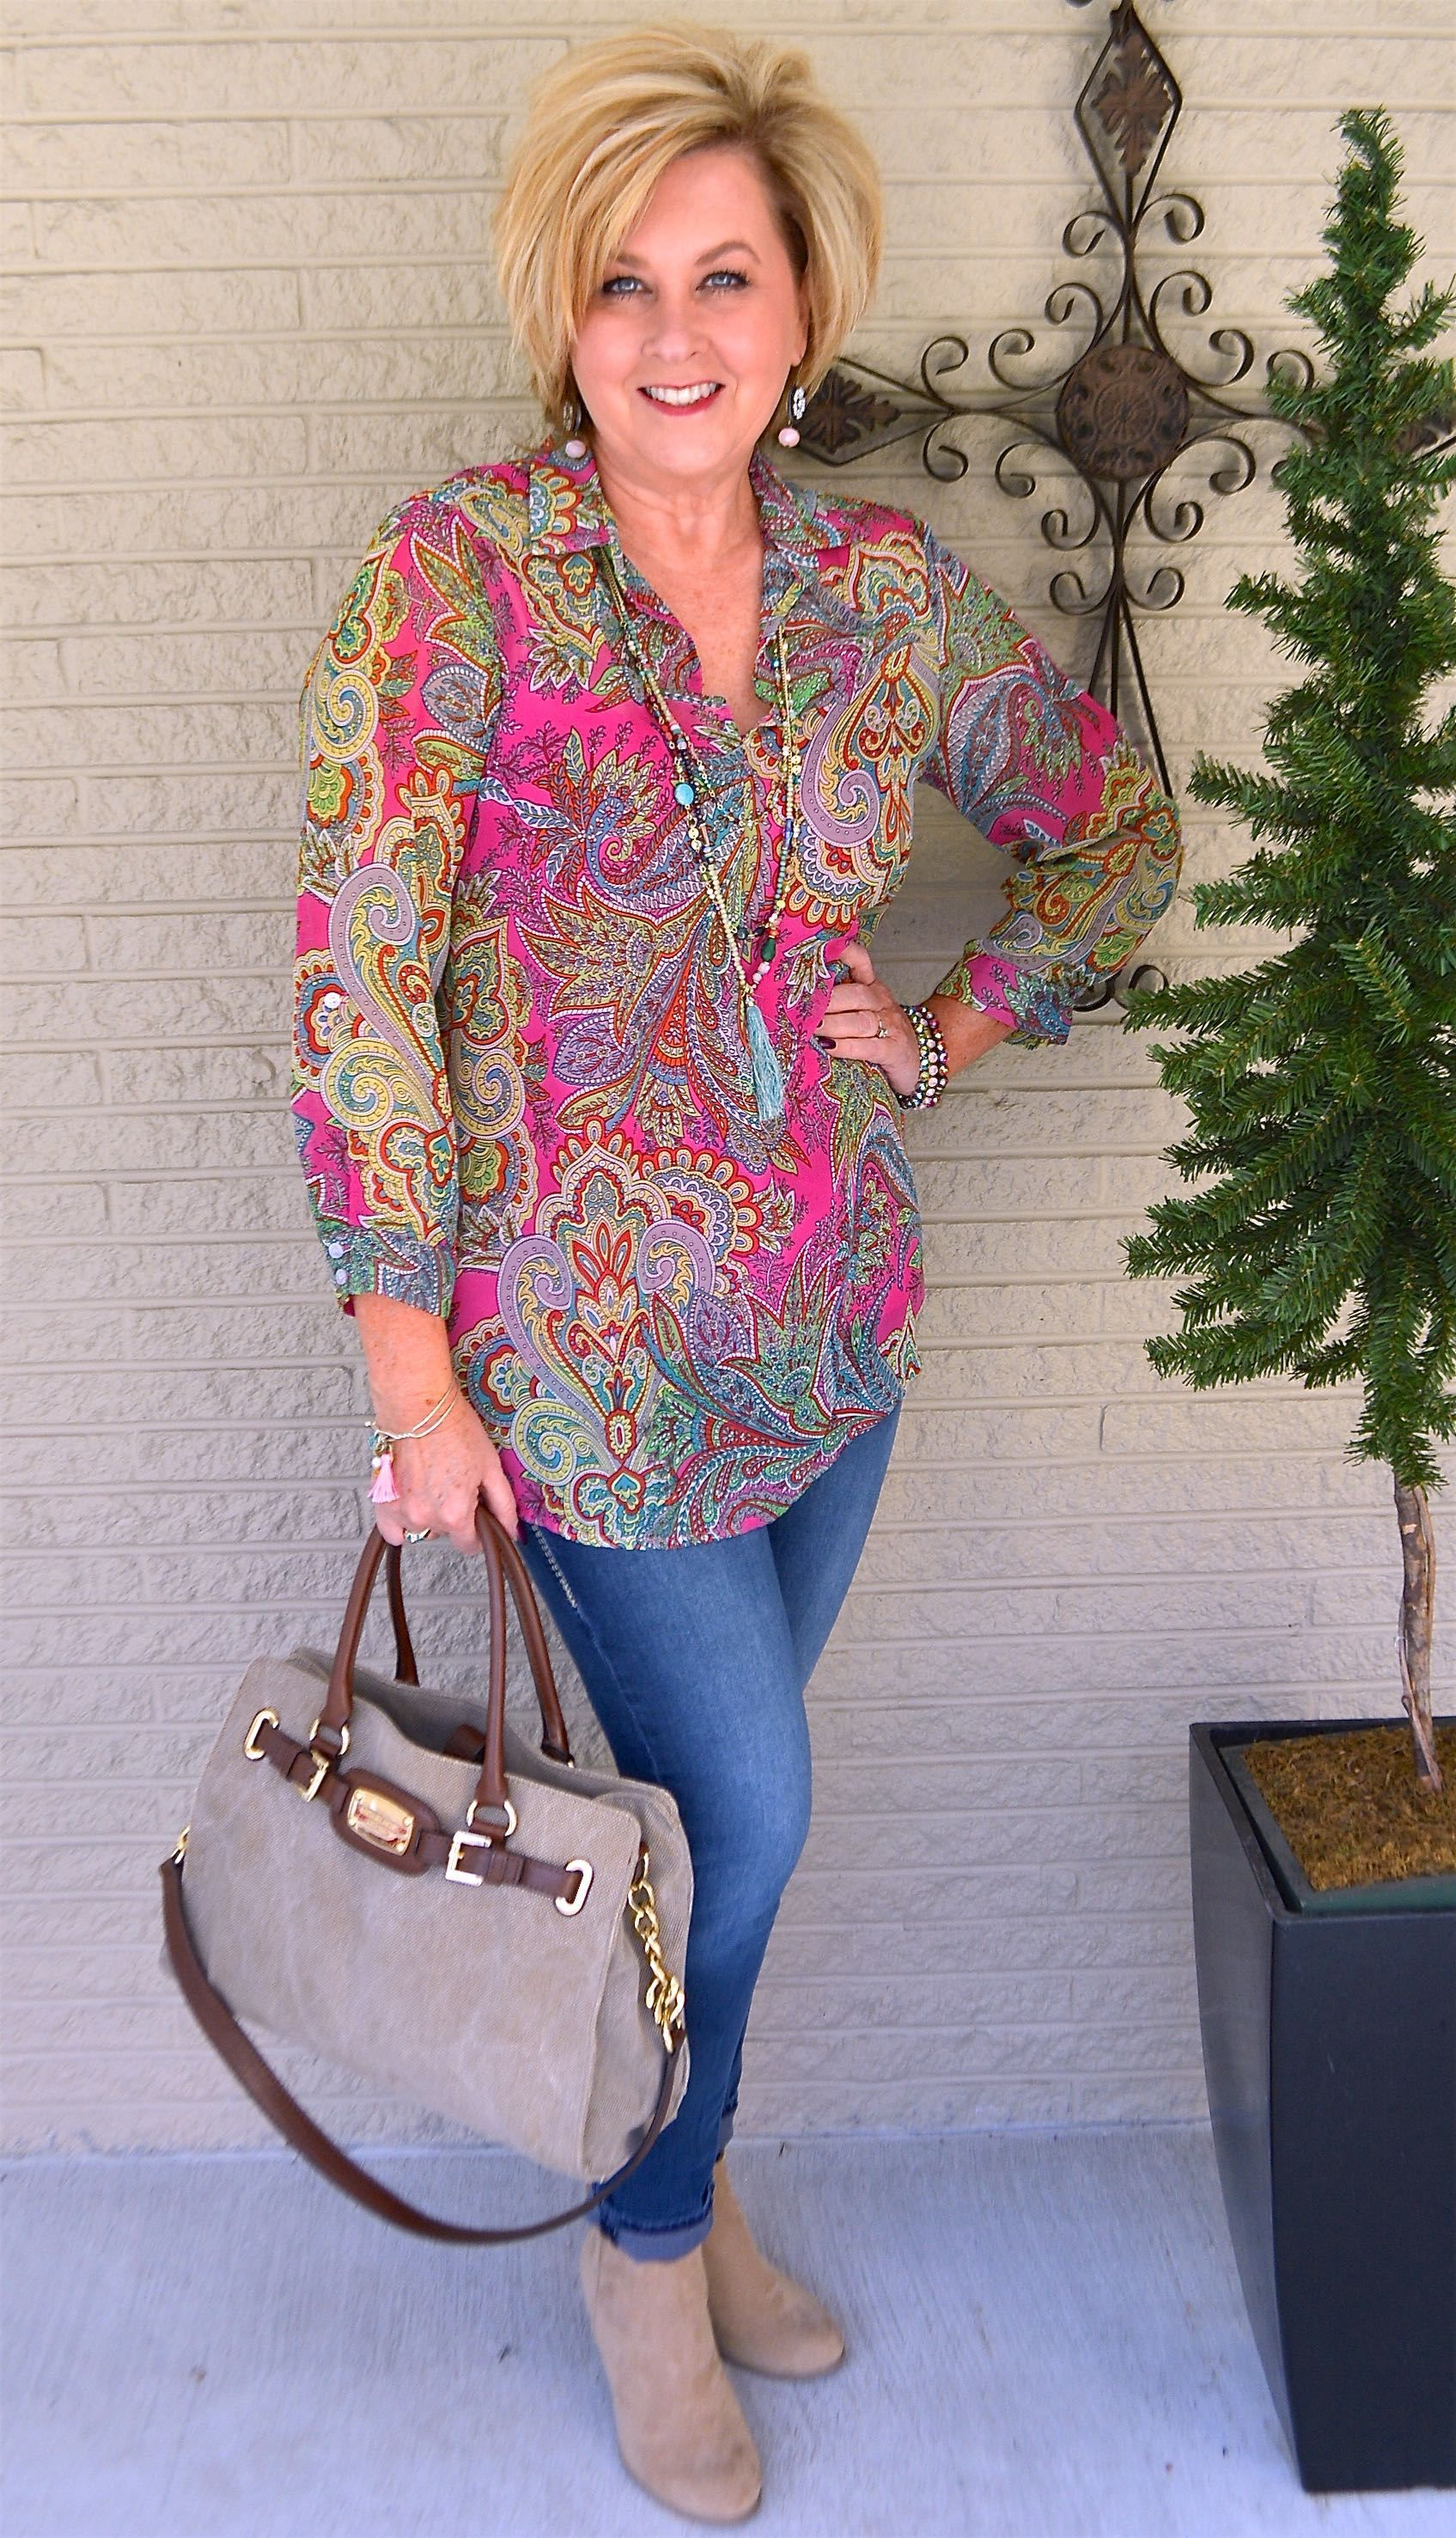 Trends For Spring Summer Clothes For Real Women Over 40: HOW TO WEAR BRIGHT COLORS